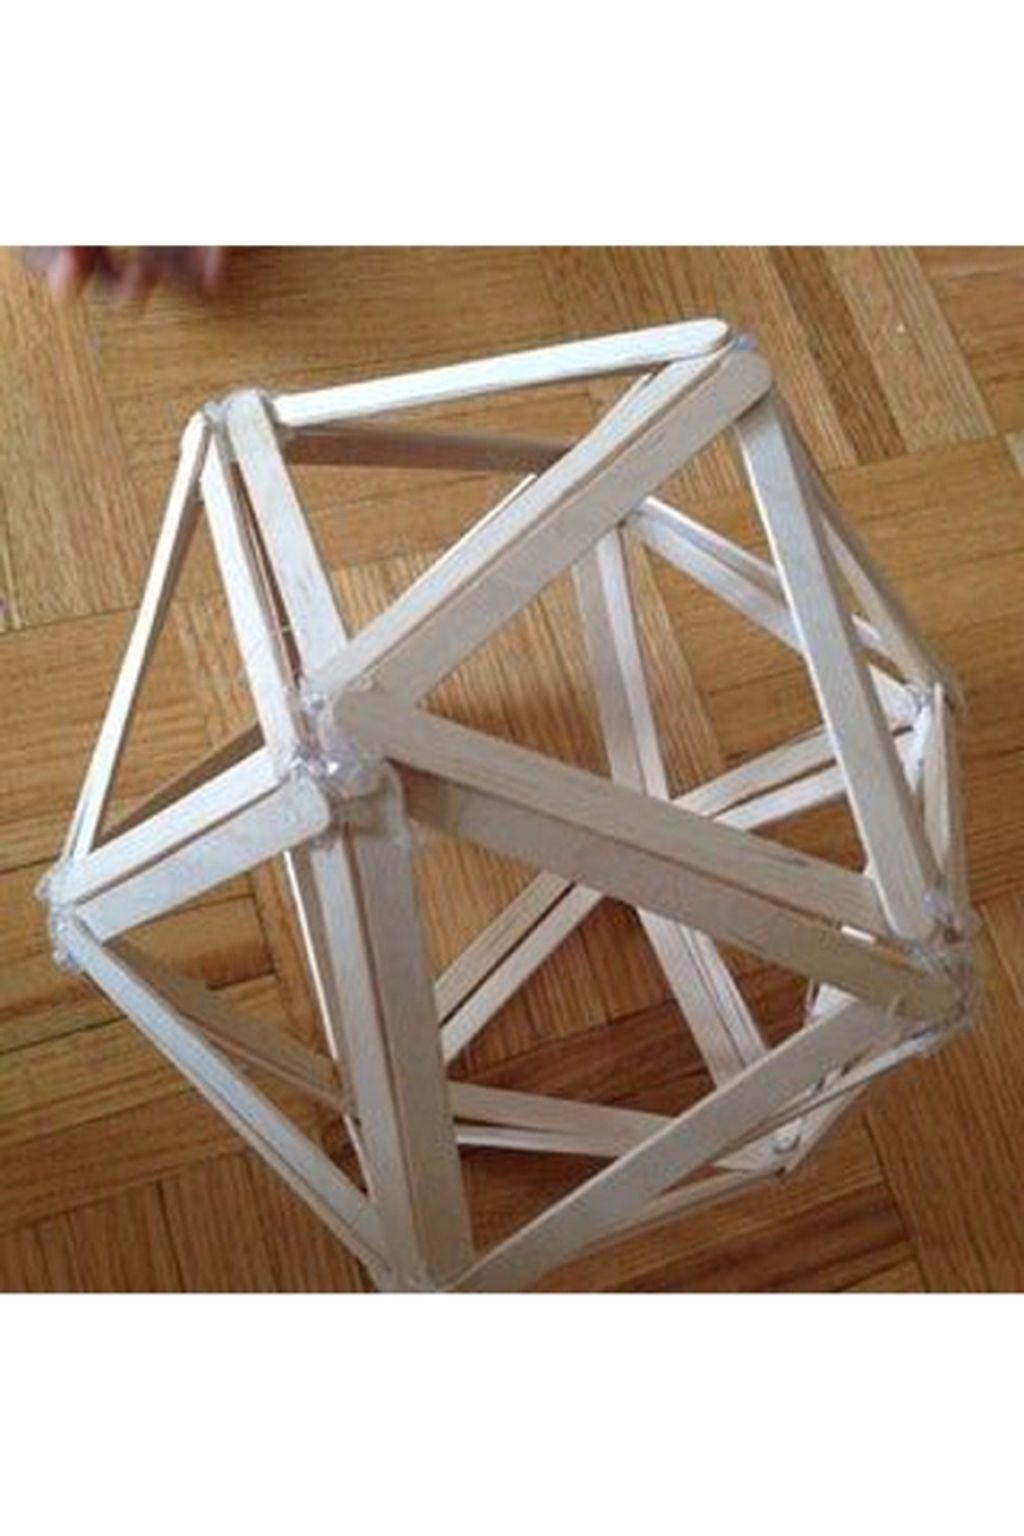 Gorgeous Diy Popsicle Stick Design Ideas For Home To Try Asap 34